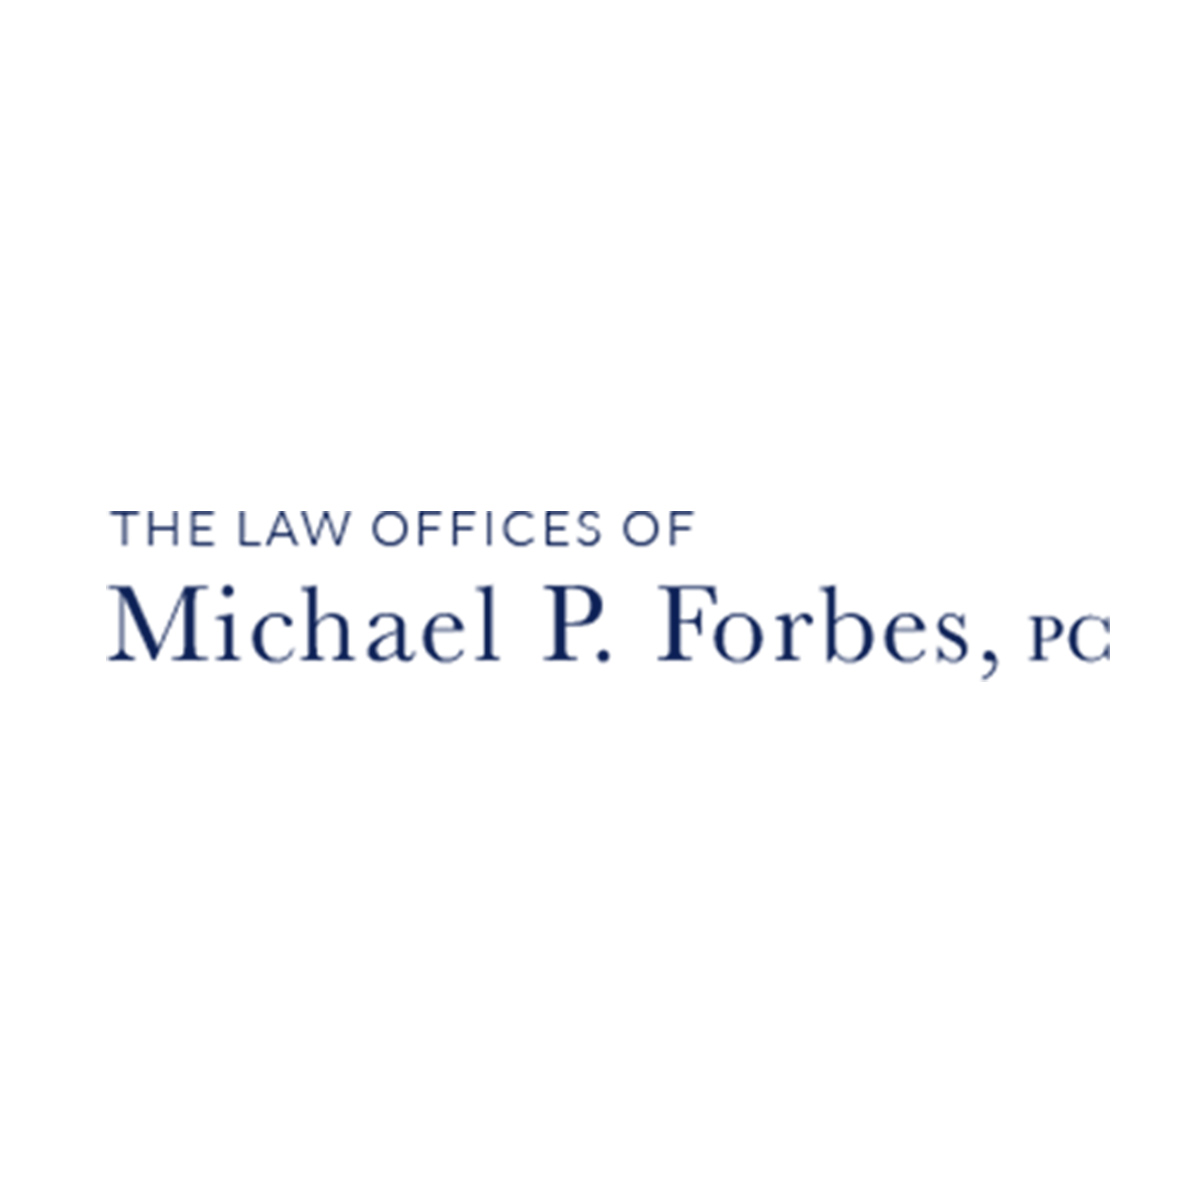 Law Office of Michael P. Forbes, PC